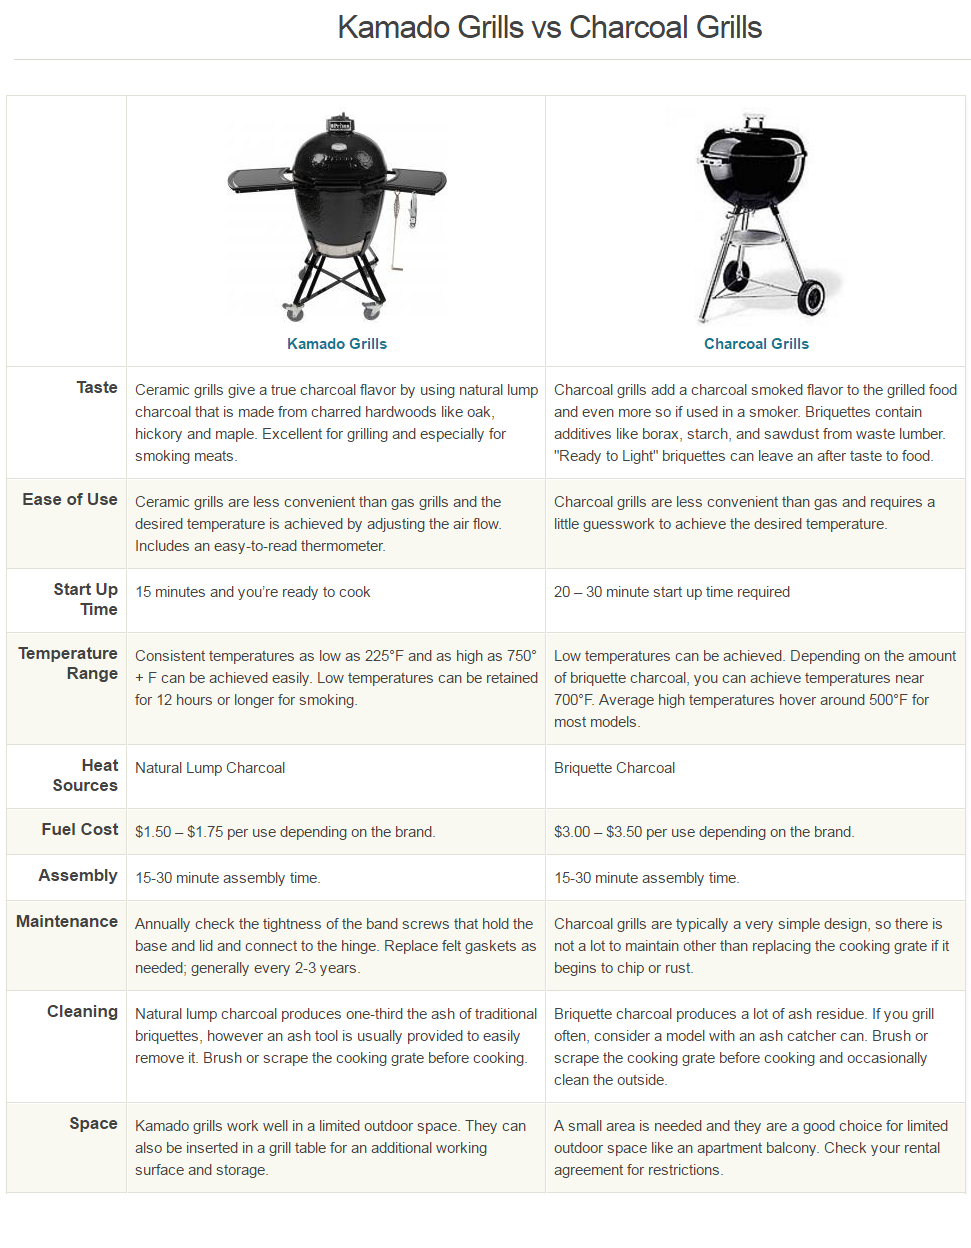 kamado Grill vs Charcoal Grill